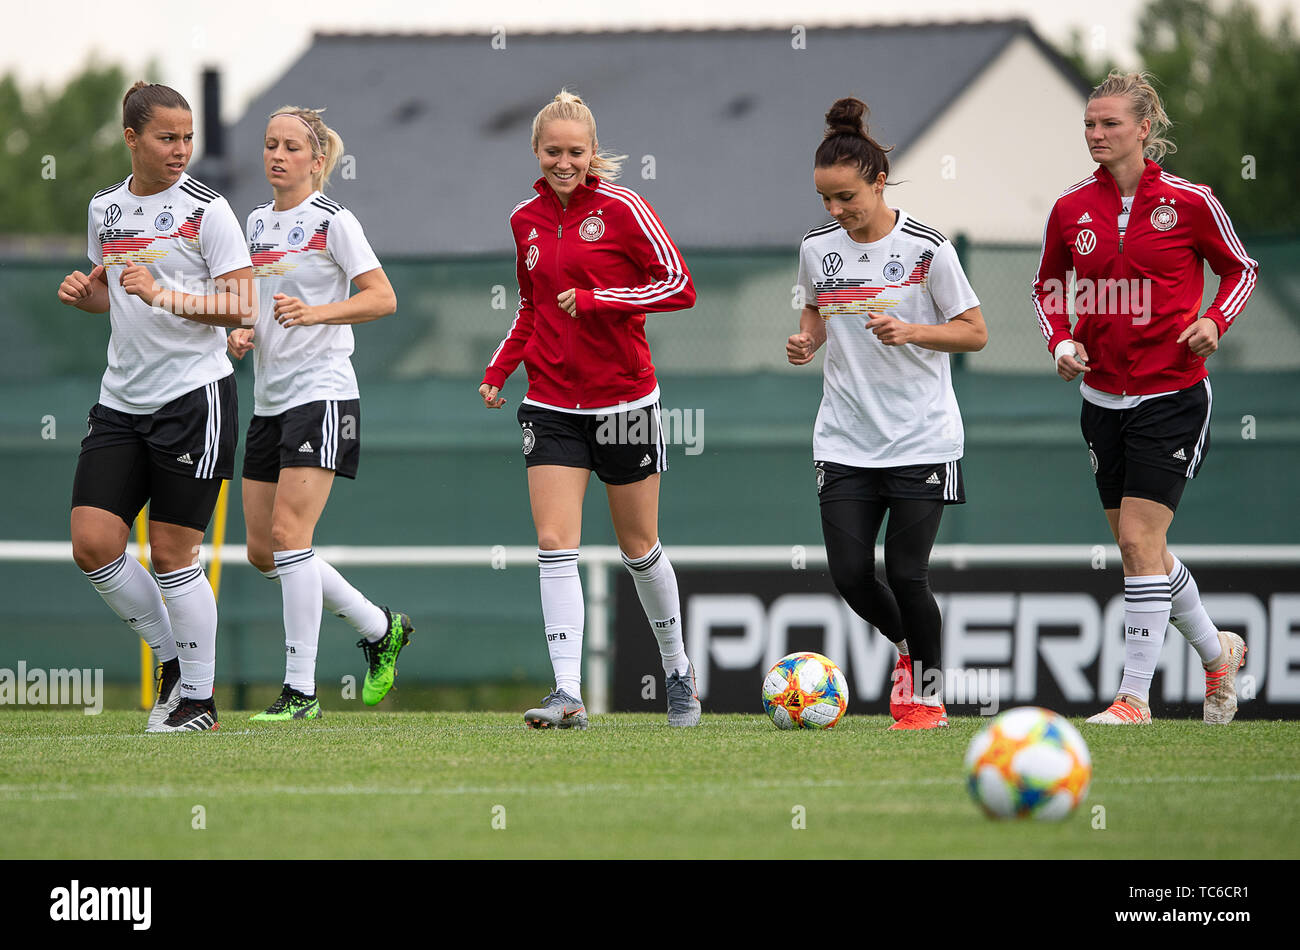 05 June 2019, France (France), Pont-Péan: Lena Oberdorf (l-r), Kathrin Hendrich, Turid Knaak, Lina Magull and Alexandra Popp warm up during a training session of the German women's national football team before the 2019 FIFA World Cup in France. The first match of the German team will take place on June 8 against China in Rennes. Photo: Sebastian Gollnow/dpa - Stock Image